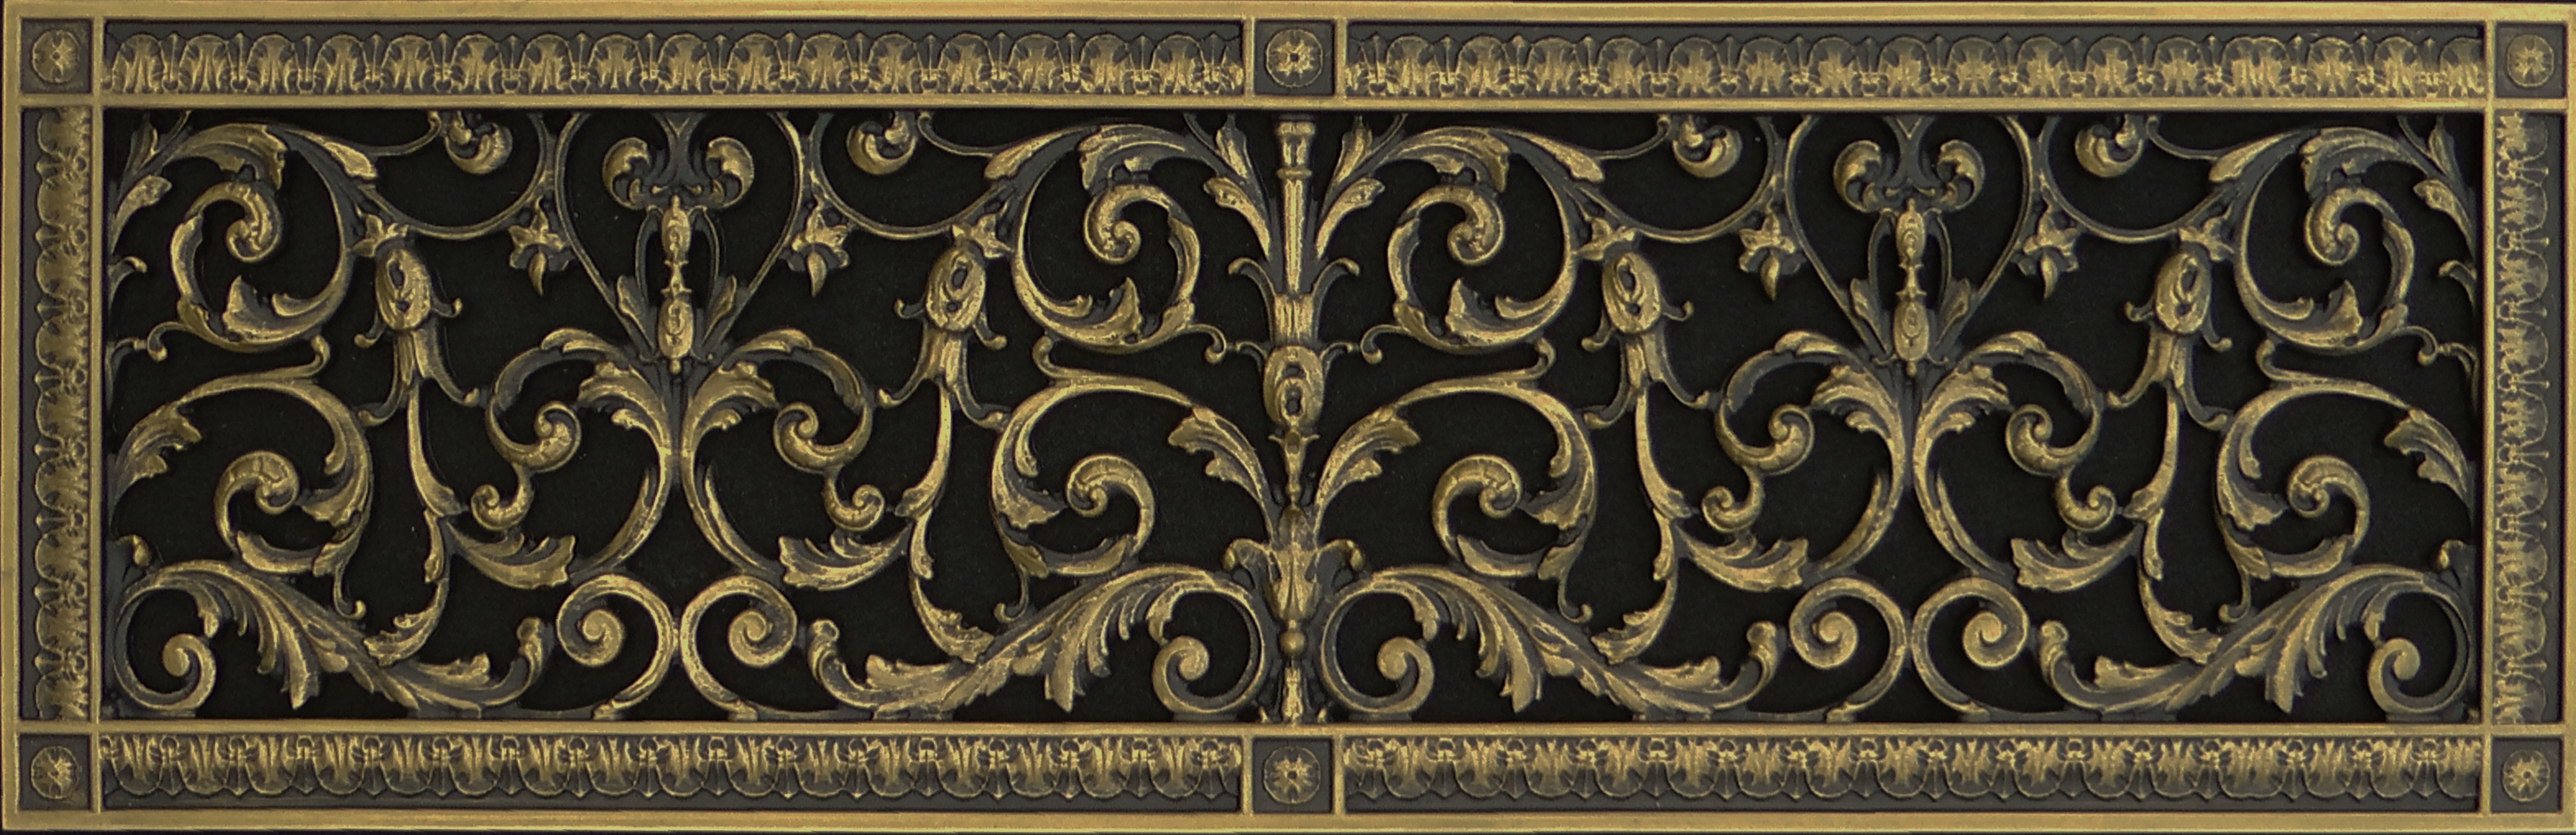 Decorative vent cover 8x30 in Louis XIV style in antique brass finish.